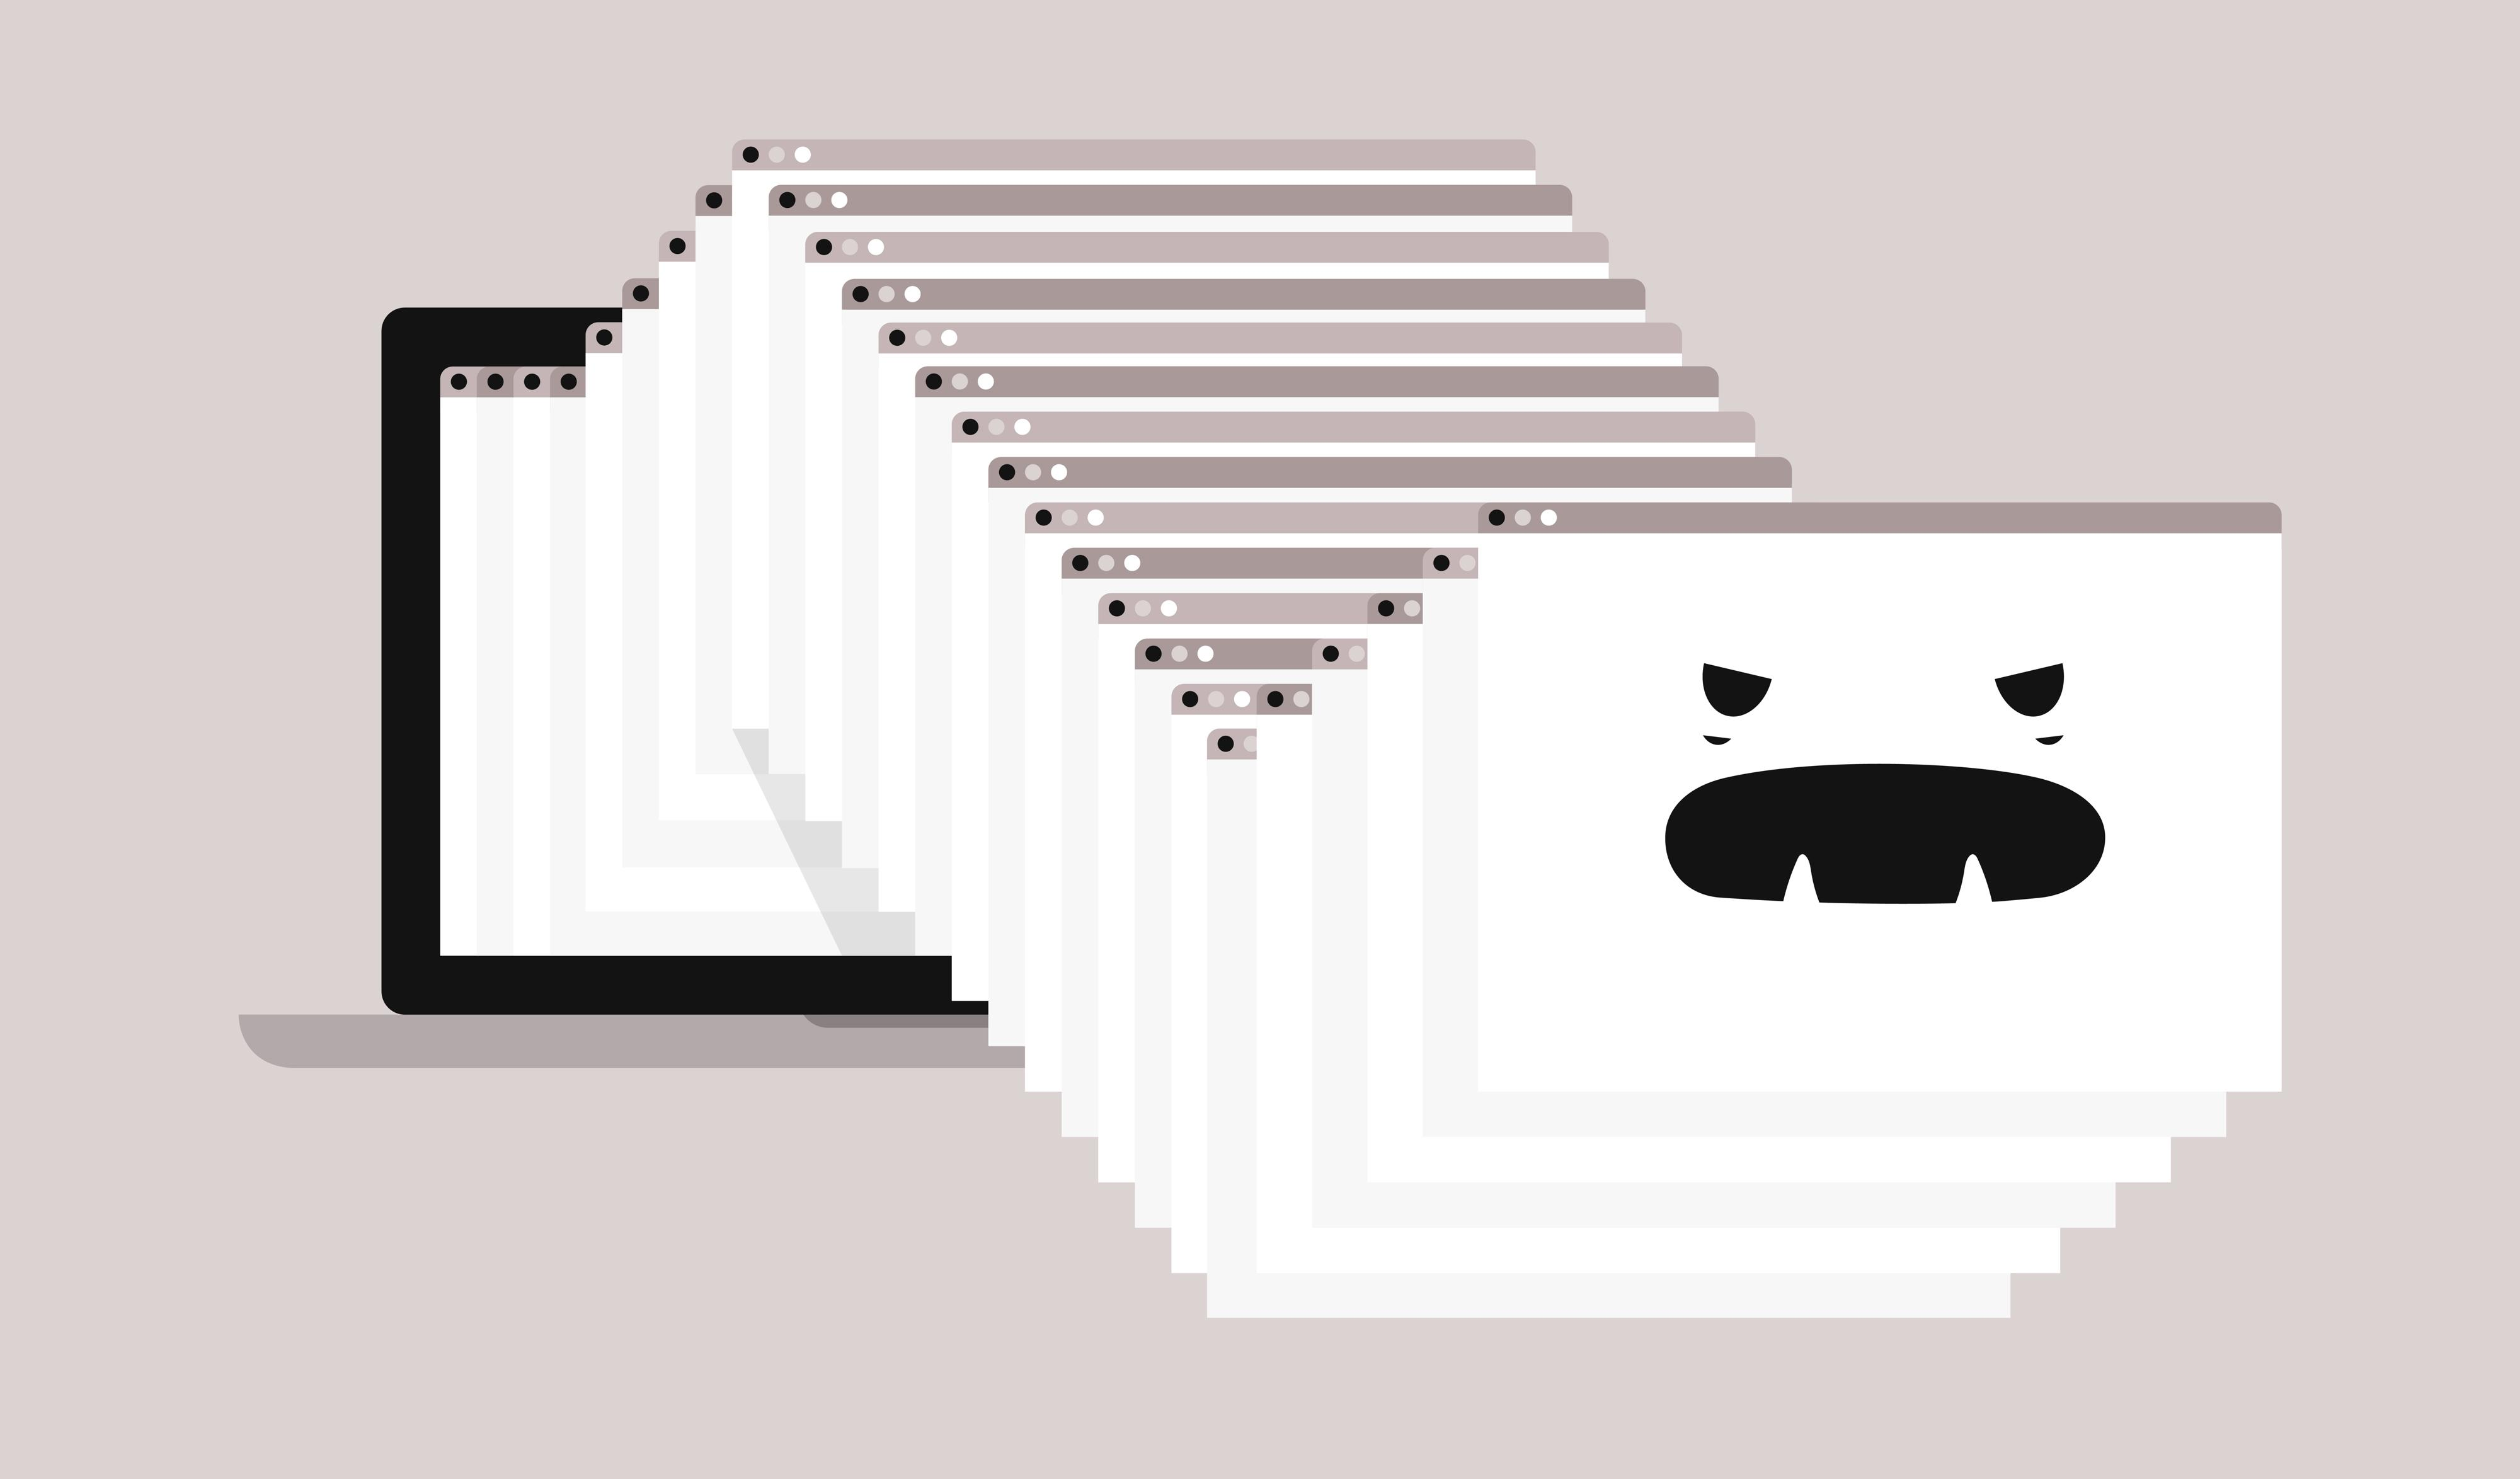 Anthropomorphic animation of an angry series of bouncing browser tabs.